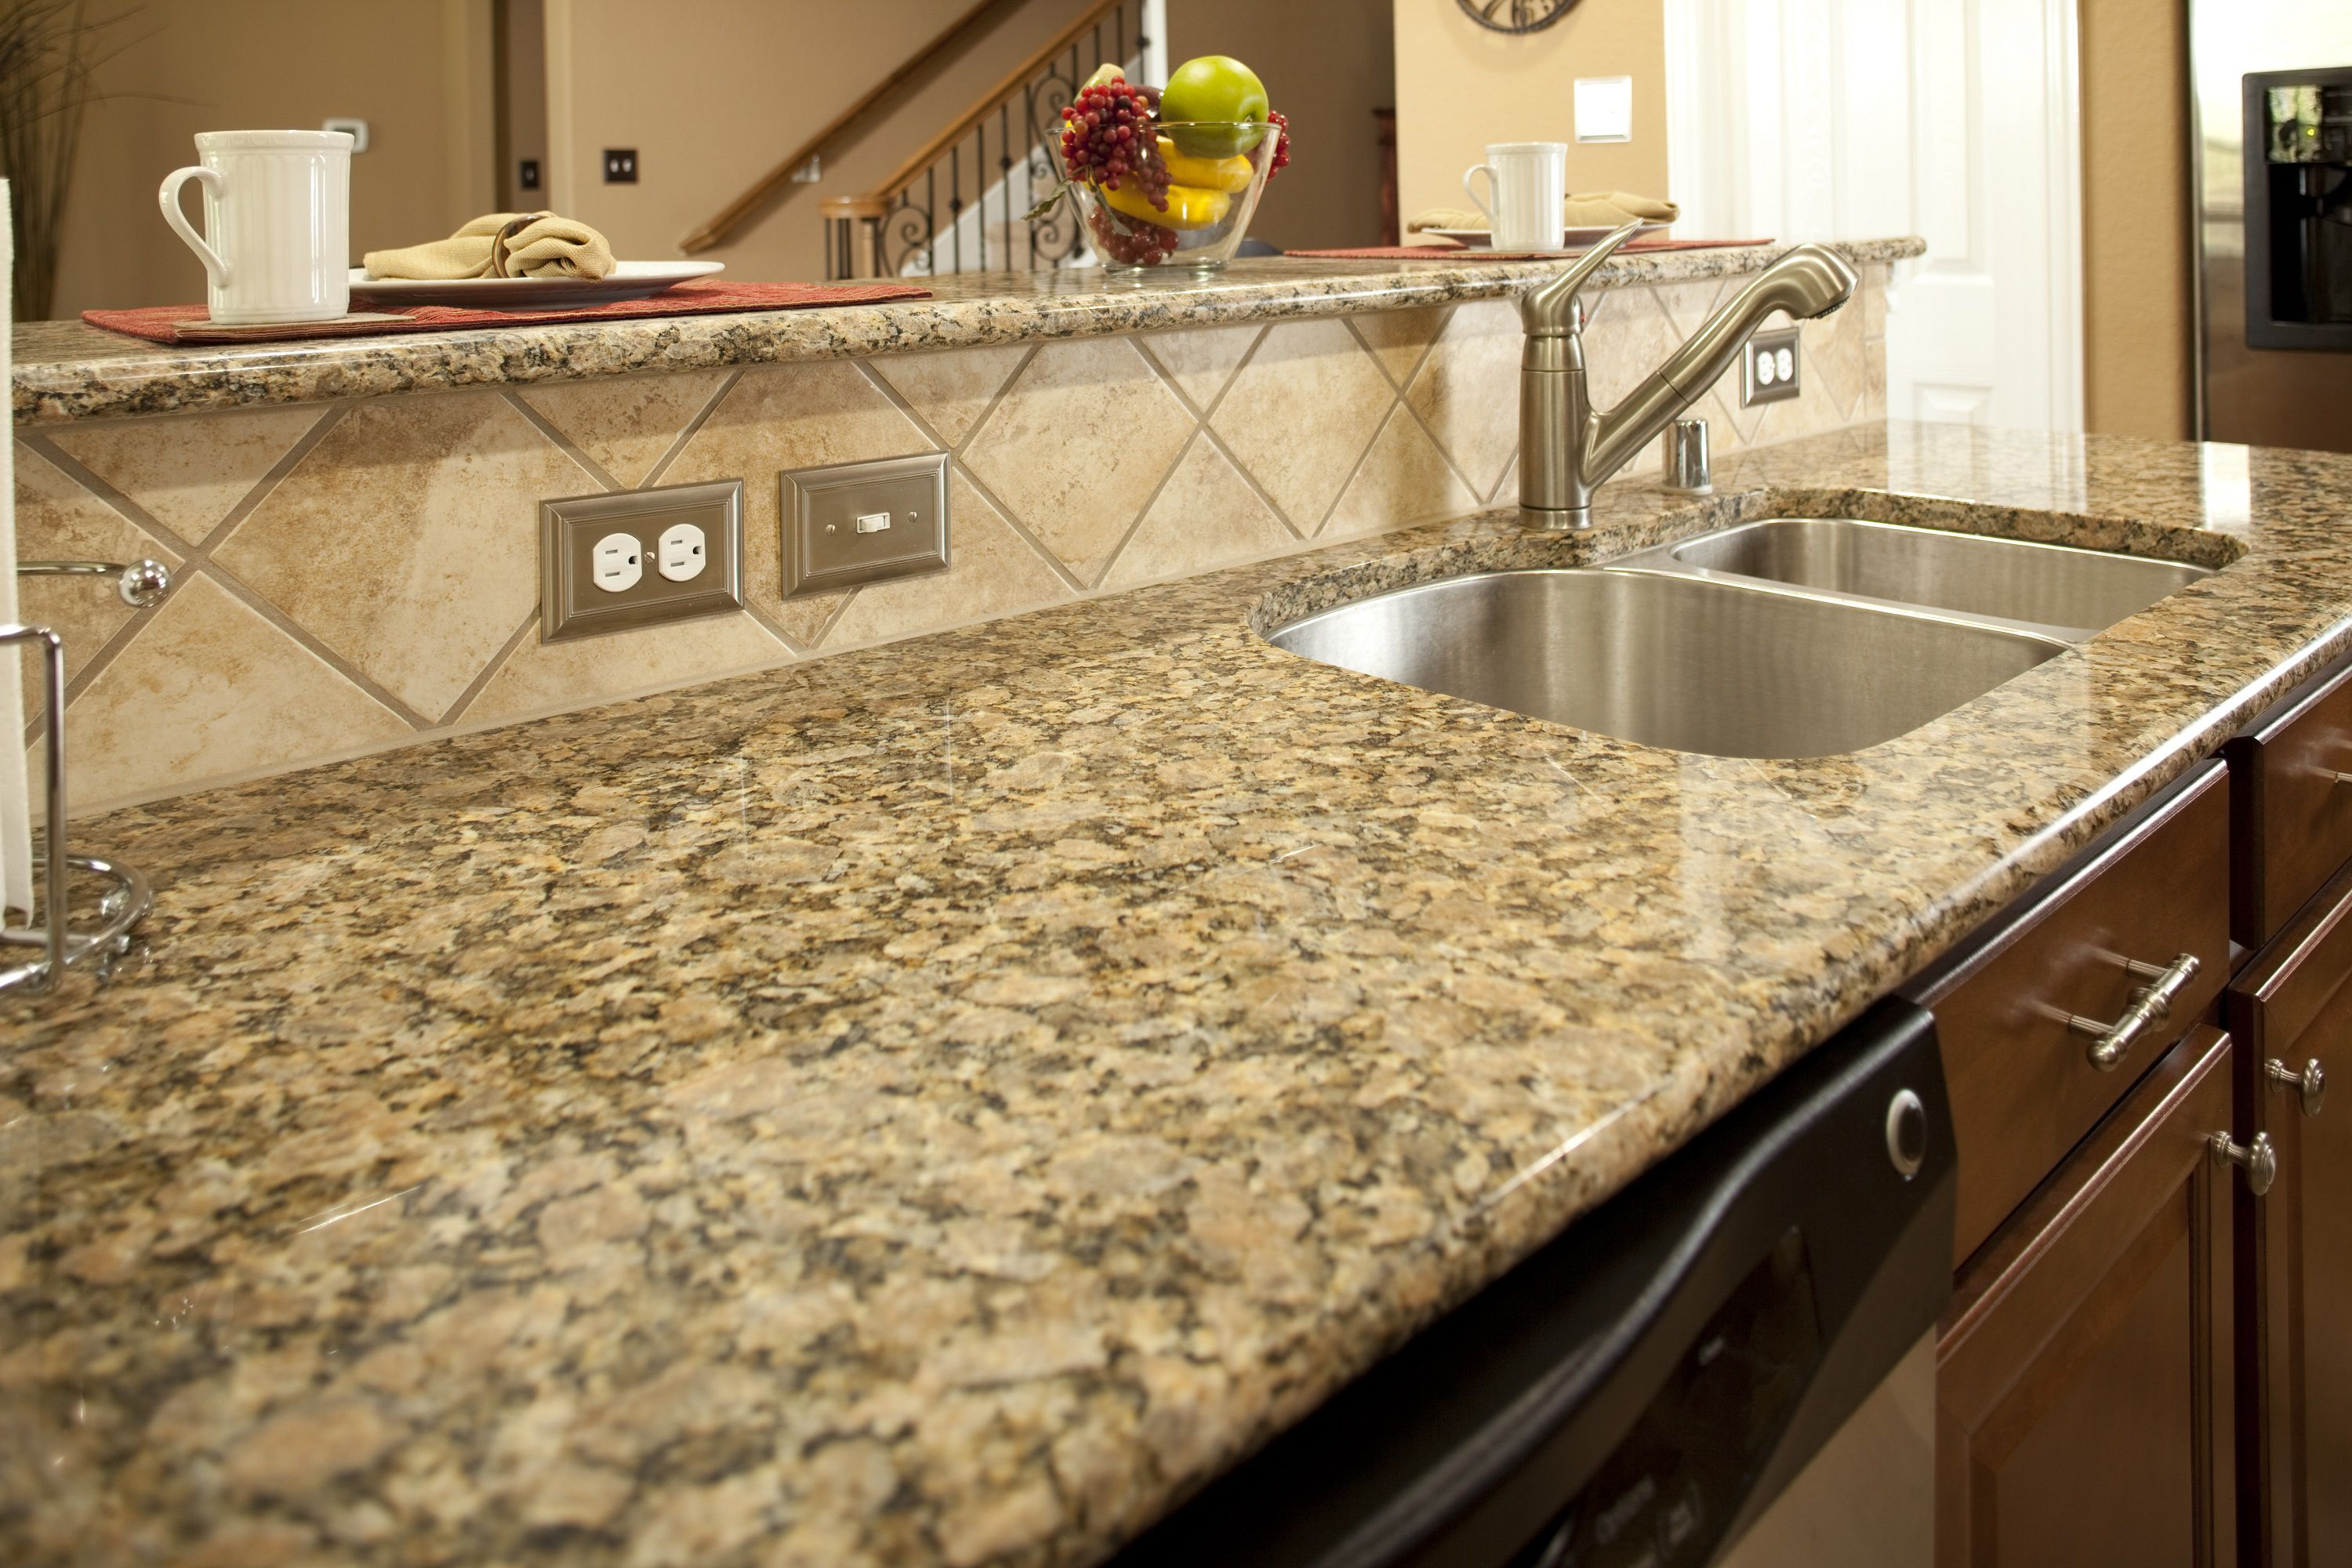 countertop countertops way cleaner rock sparkling stone granite get the easy and to